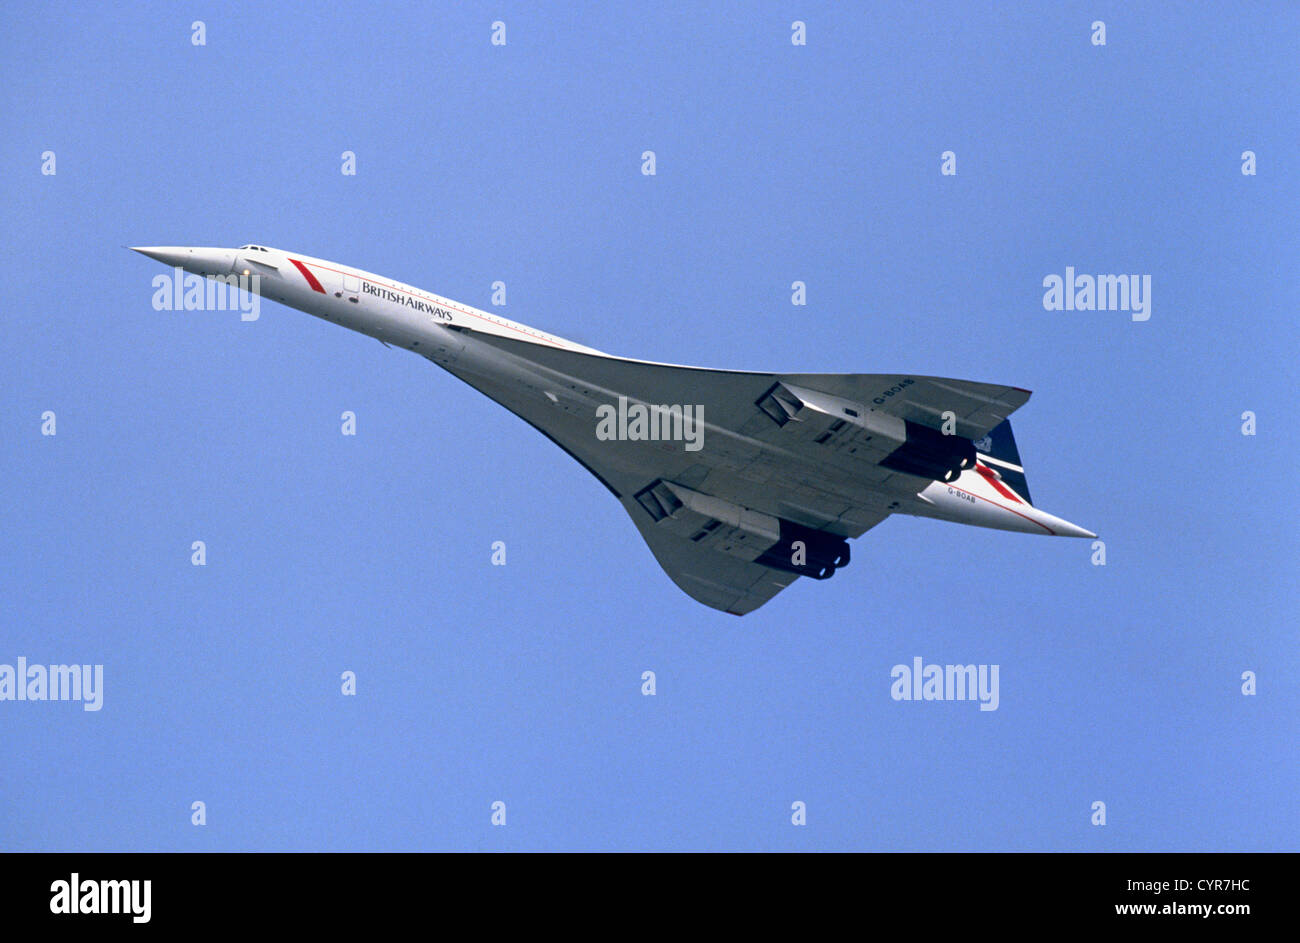 a-concorde-supersonic-airliner-registrat